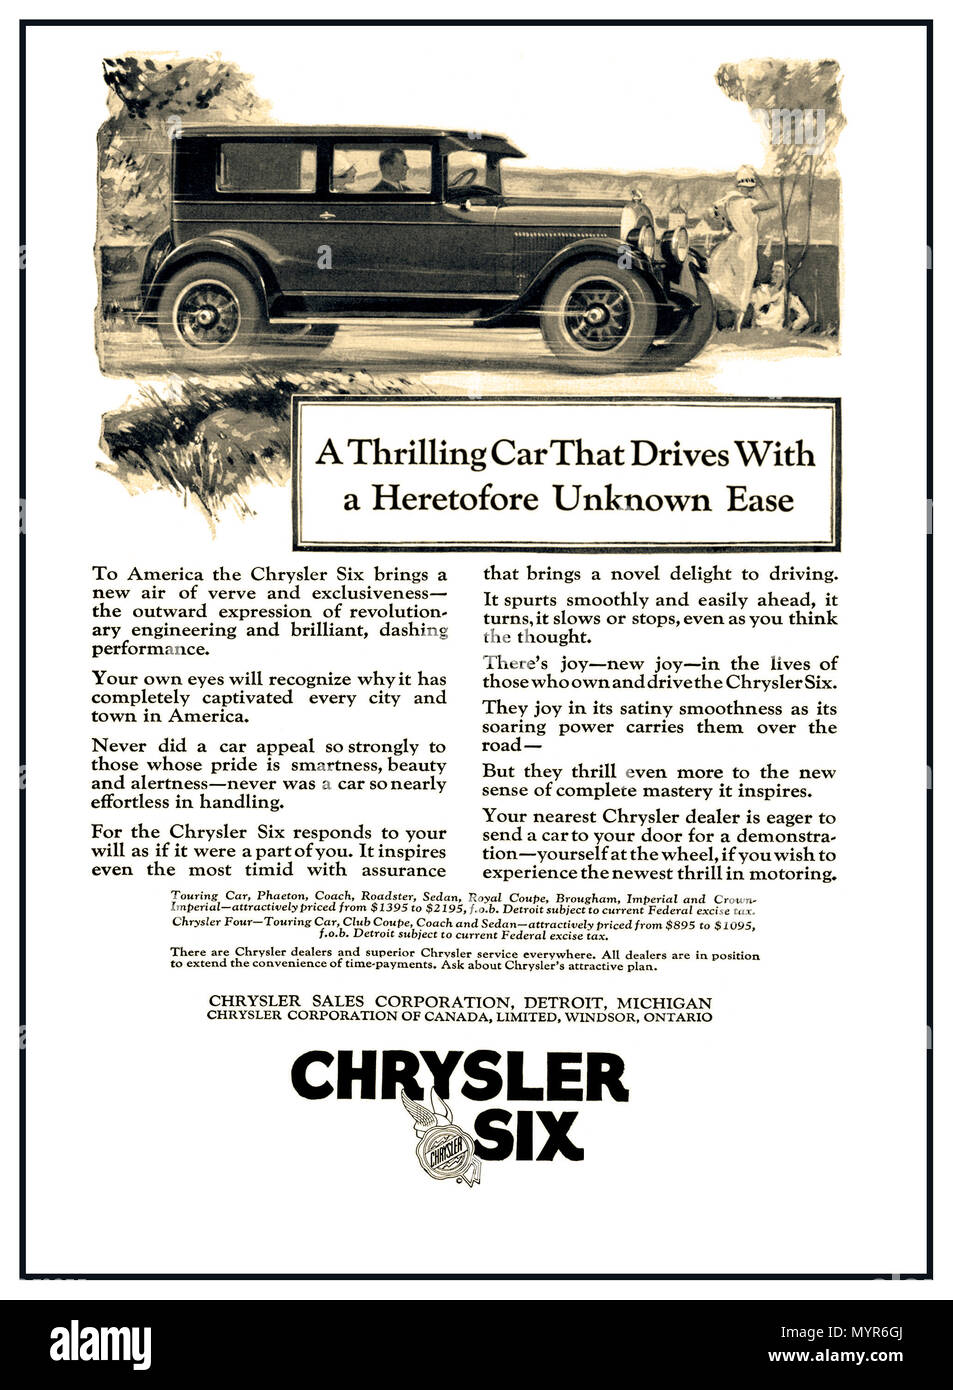 Vintage press Advertisement for 1926 Chrysler Six Automobile Car Speed Stability Touring Ad Print poster The car advertised a powerful, six-cylinder engine which could achieve speeds of 70 mph using just 20 miles per gallon. The Chrysler Six also featured aluminum pistons, replaceable oil and air filters, shock absorbers, and standard-equipment hydraulic brakes on all wheels. - Stock Image